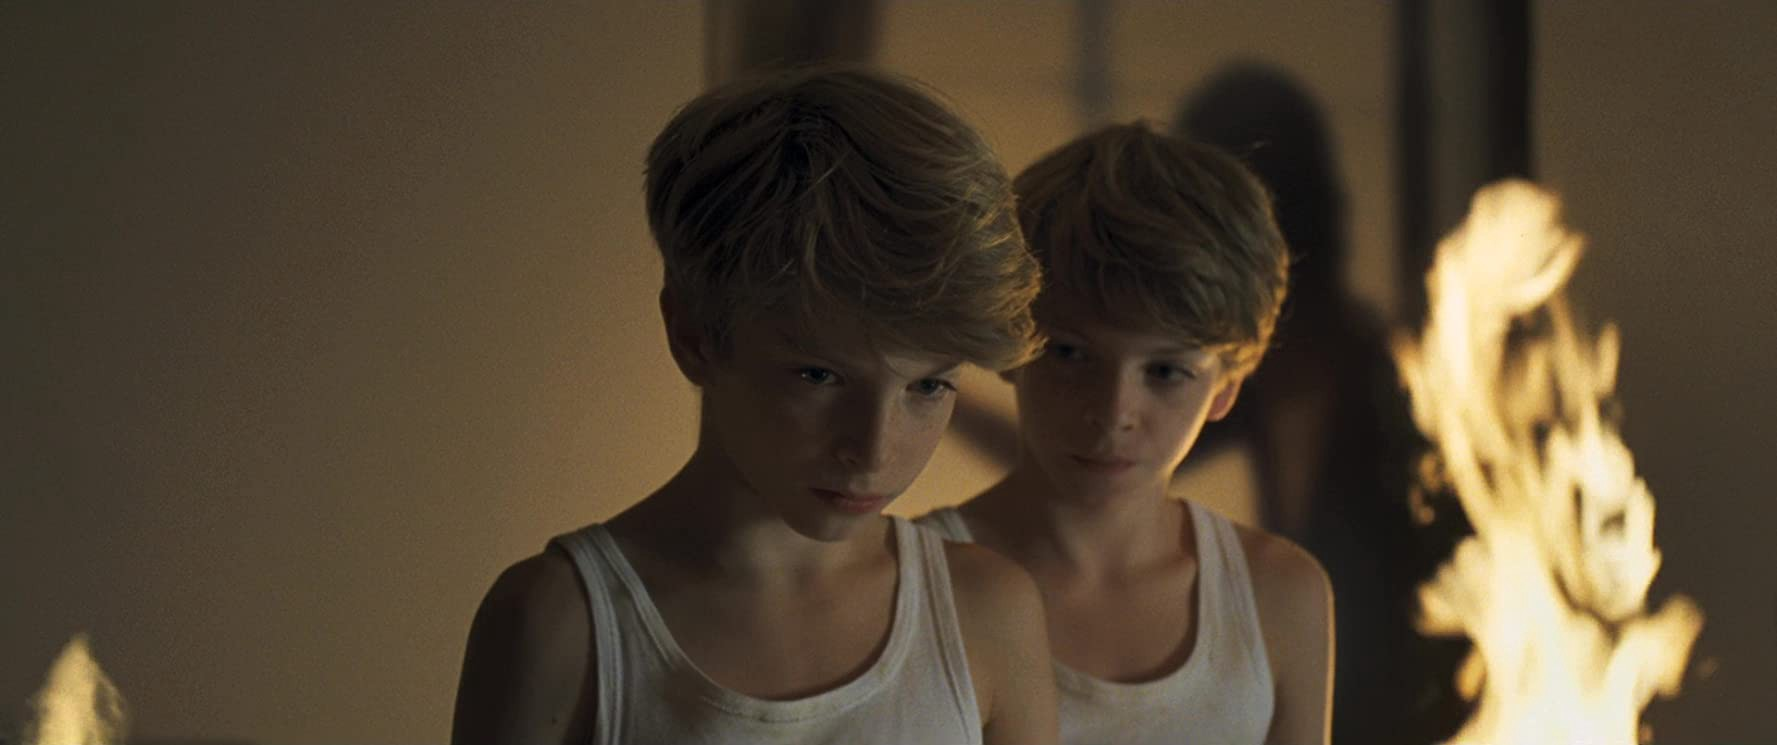 watch goodnight mommy online free with subtitles